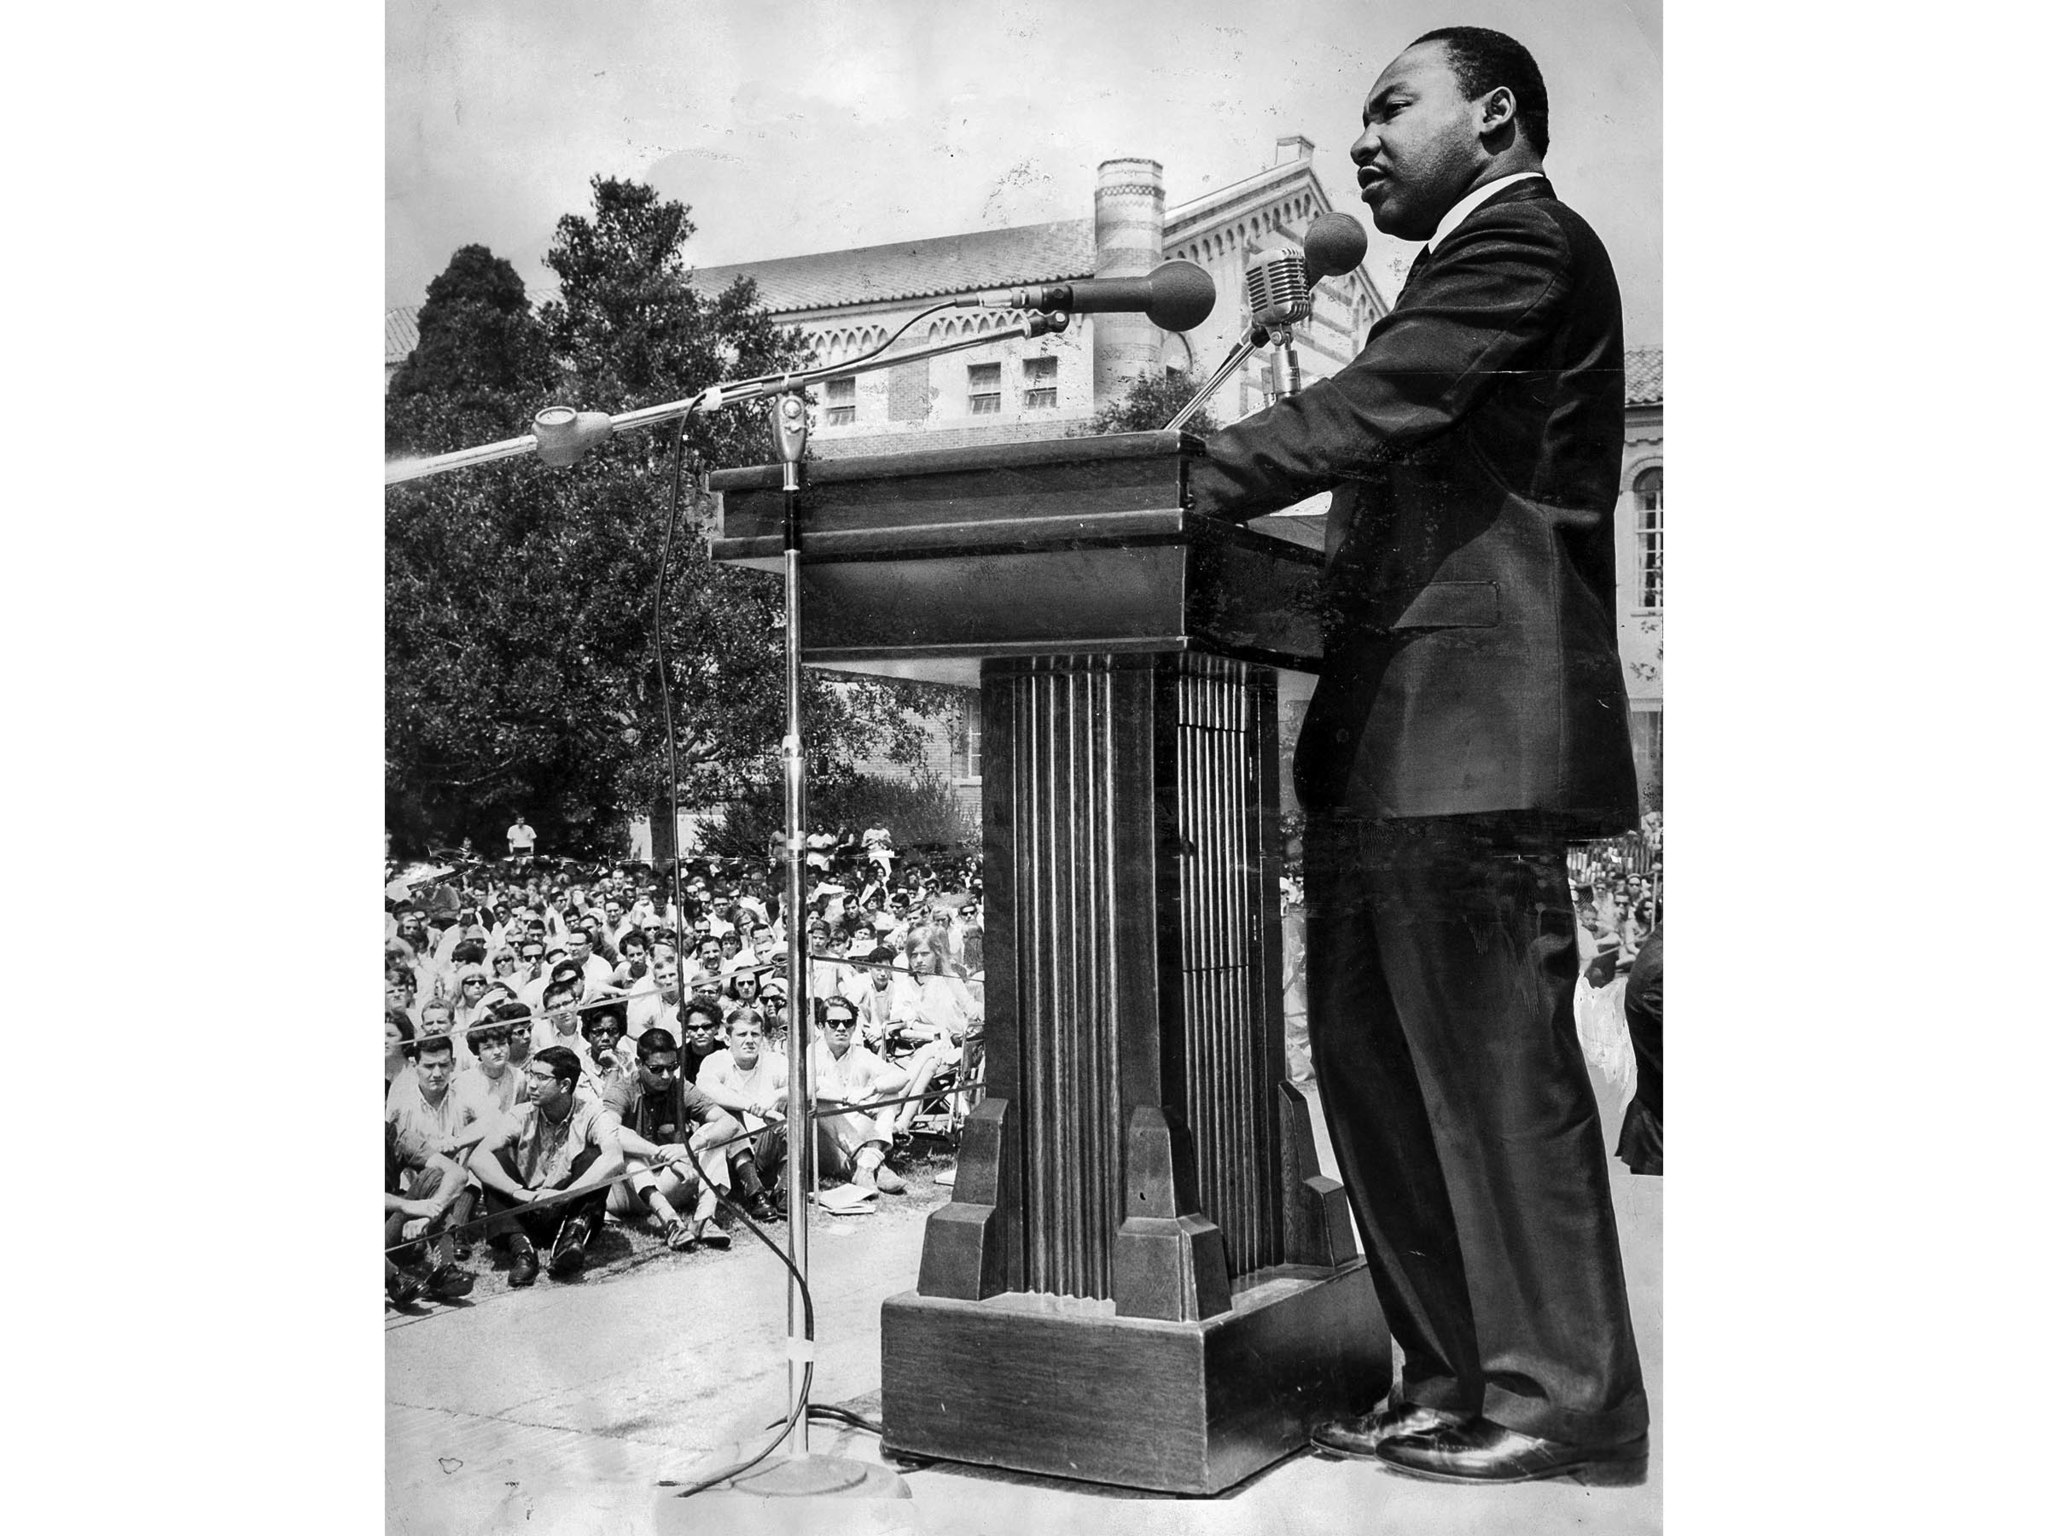 Apr. 27, 1965: Dr. Martin Luther King adressing students at UCLA. This image was published the next